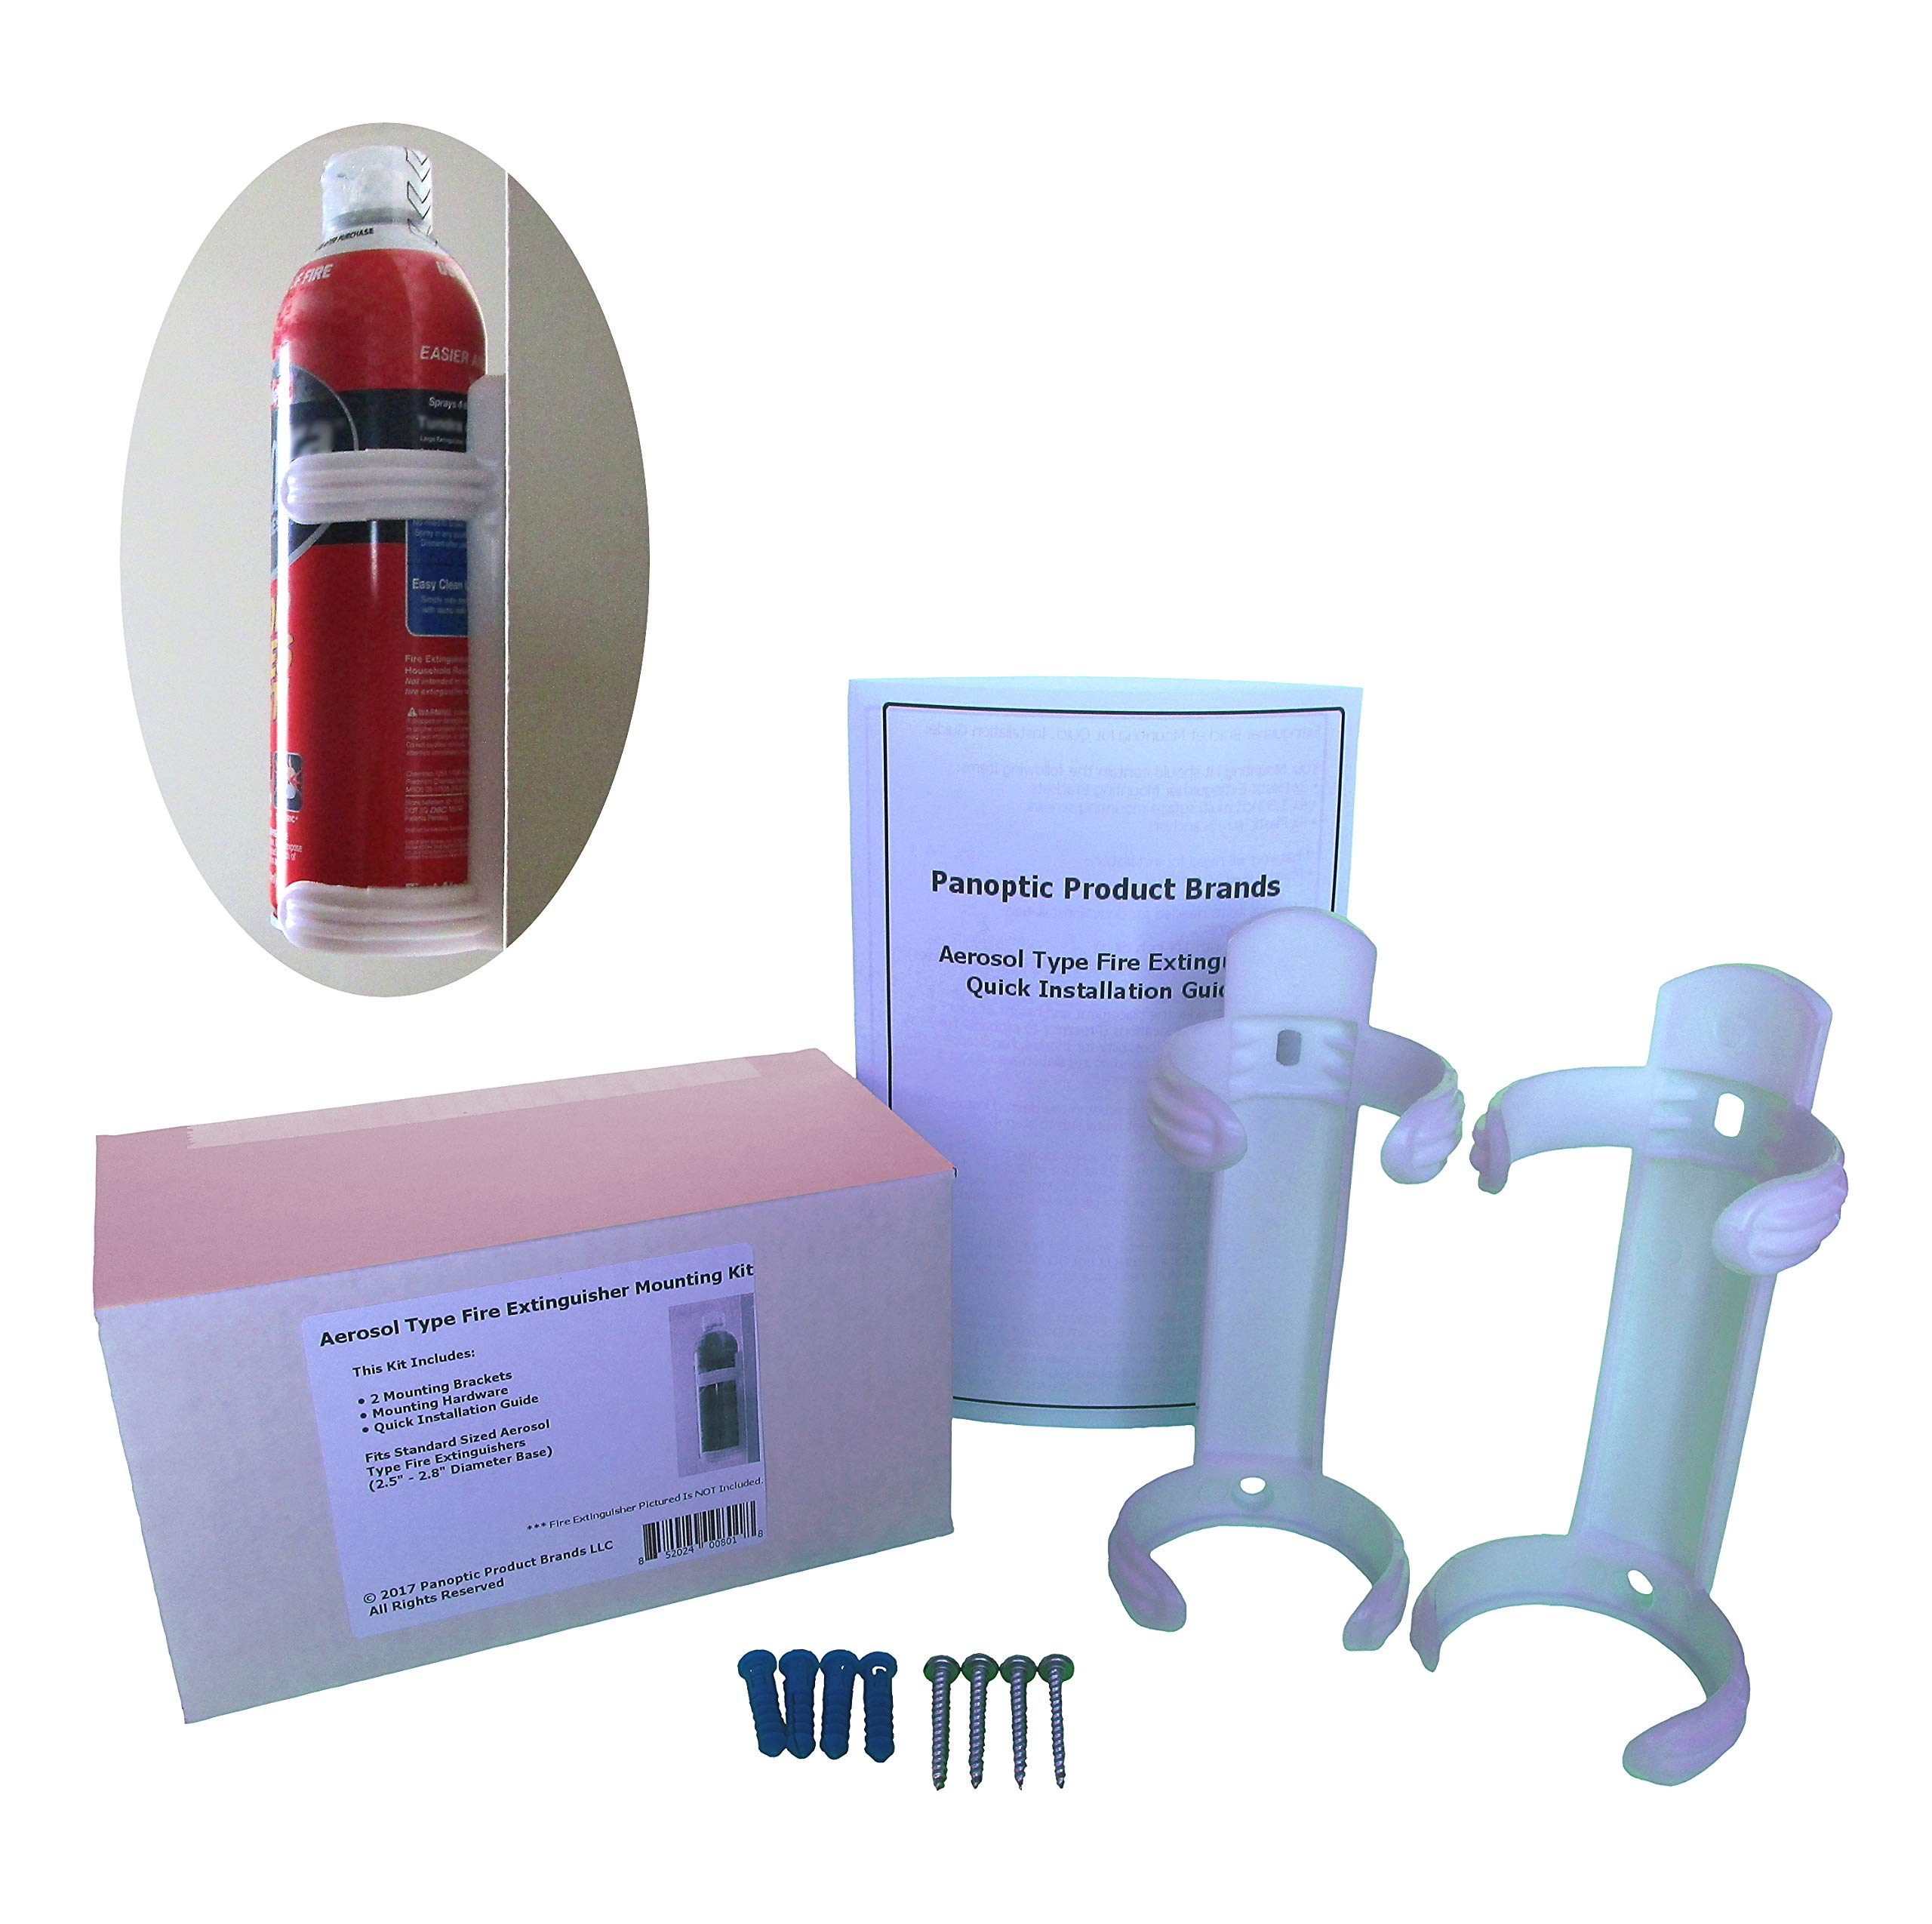 Aerosol Type fire Extinguisher mounting kit. Fits aerosol Type fire extinguishers with a 2.5'' - 2.7'' Diameter Base (AF400-2 Tundra). Package Includes 2 Brackets, Hardware, and Instructions.